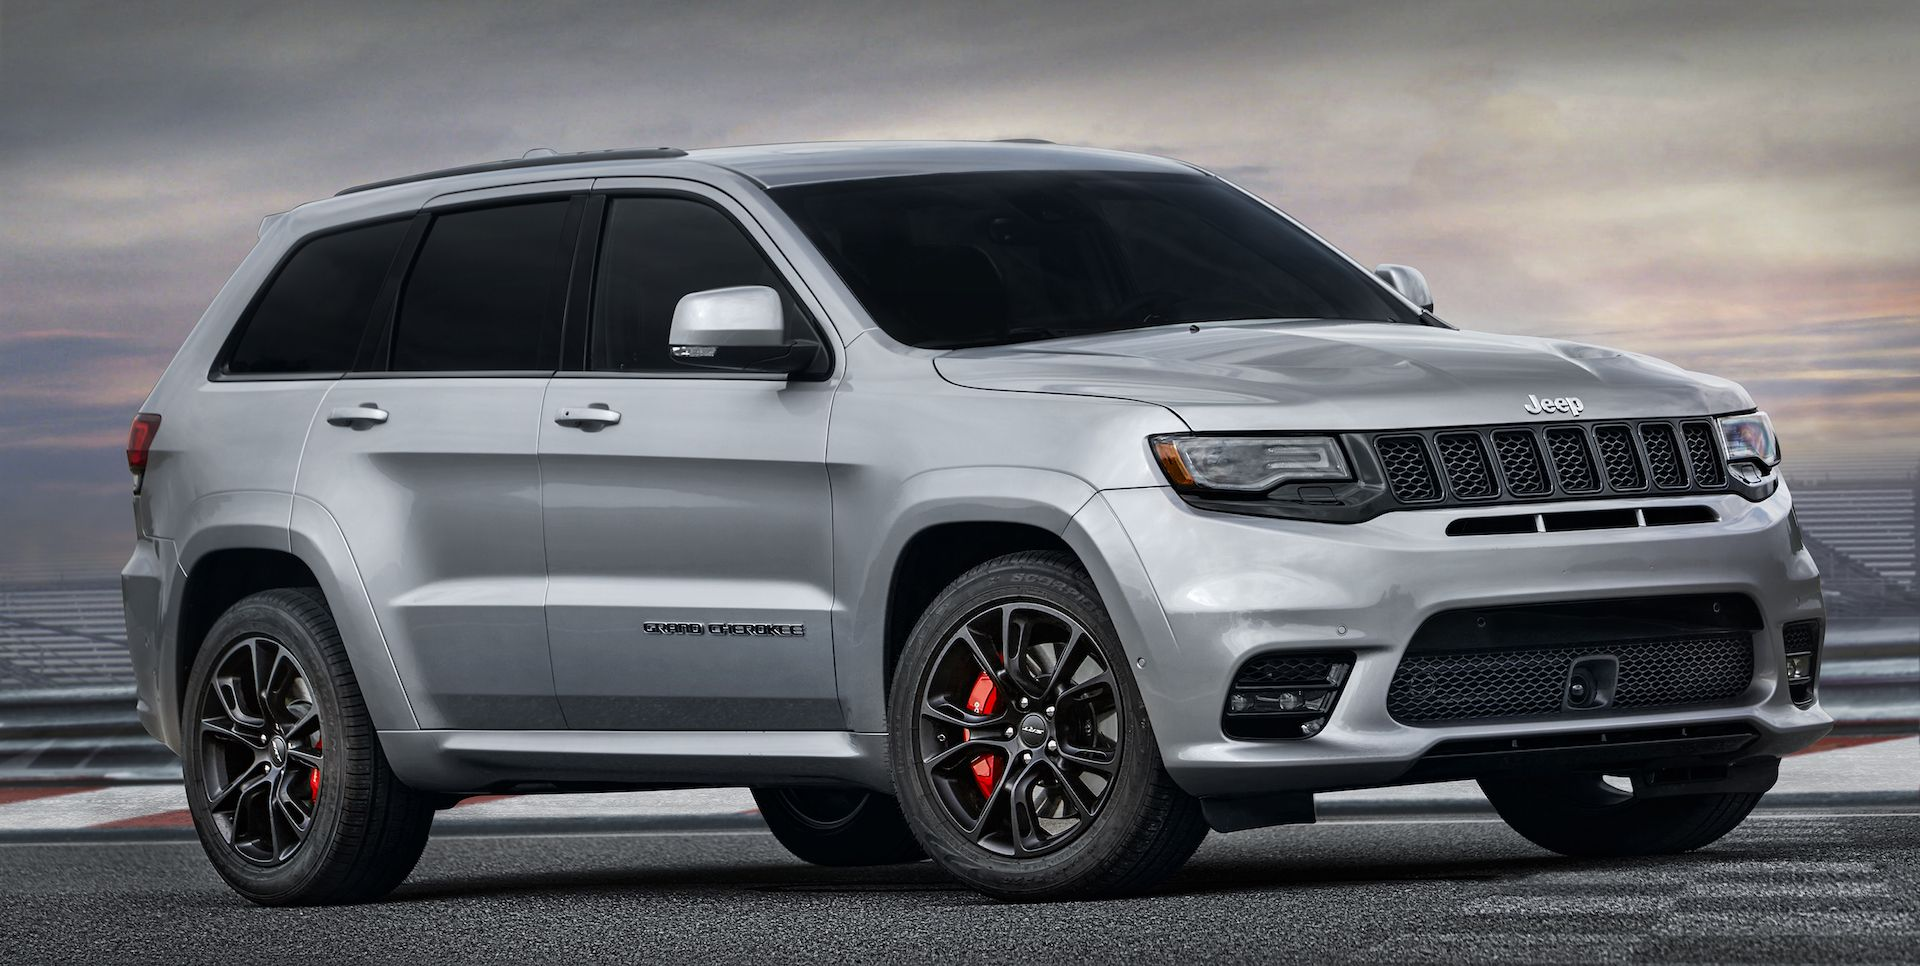 2018 jeep grand cherokee trackhawk the most powerful suv ever produced official release in summer 17 auto news auto world news jeep fans